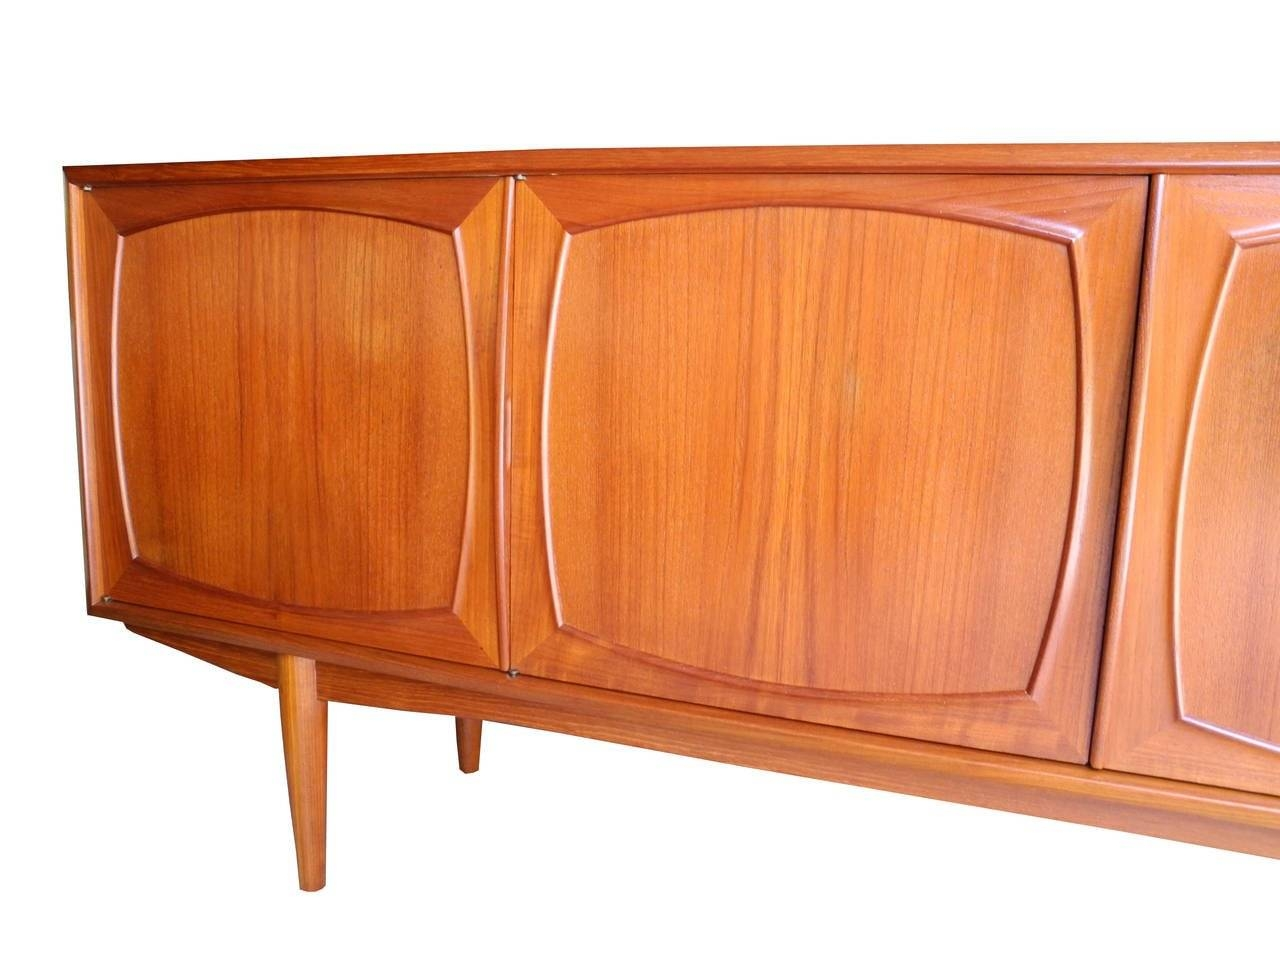 Four Door Danish Modern Teak Sideboard Or Credenzajohannes Within Ready Made Sideboards (#13 of 20)